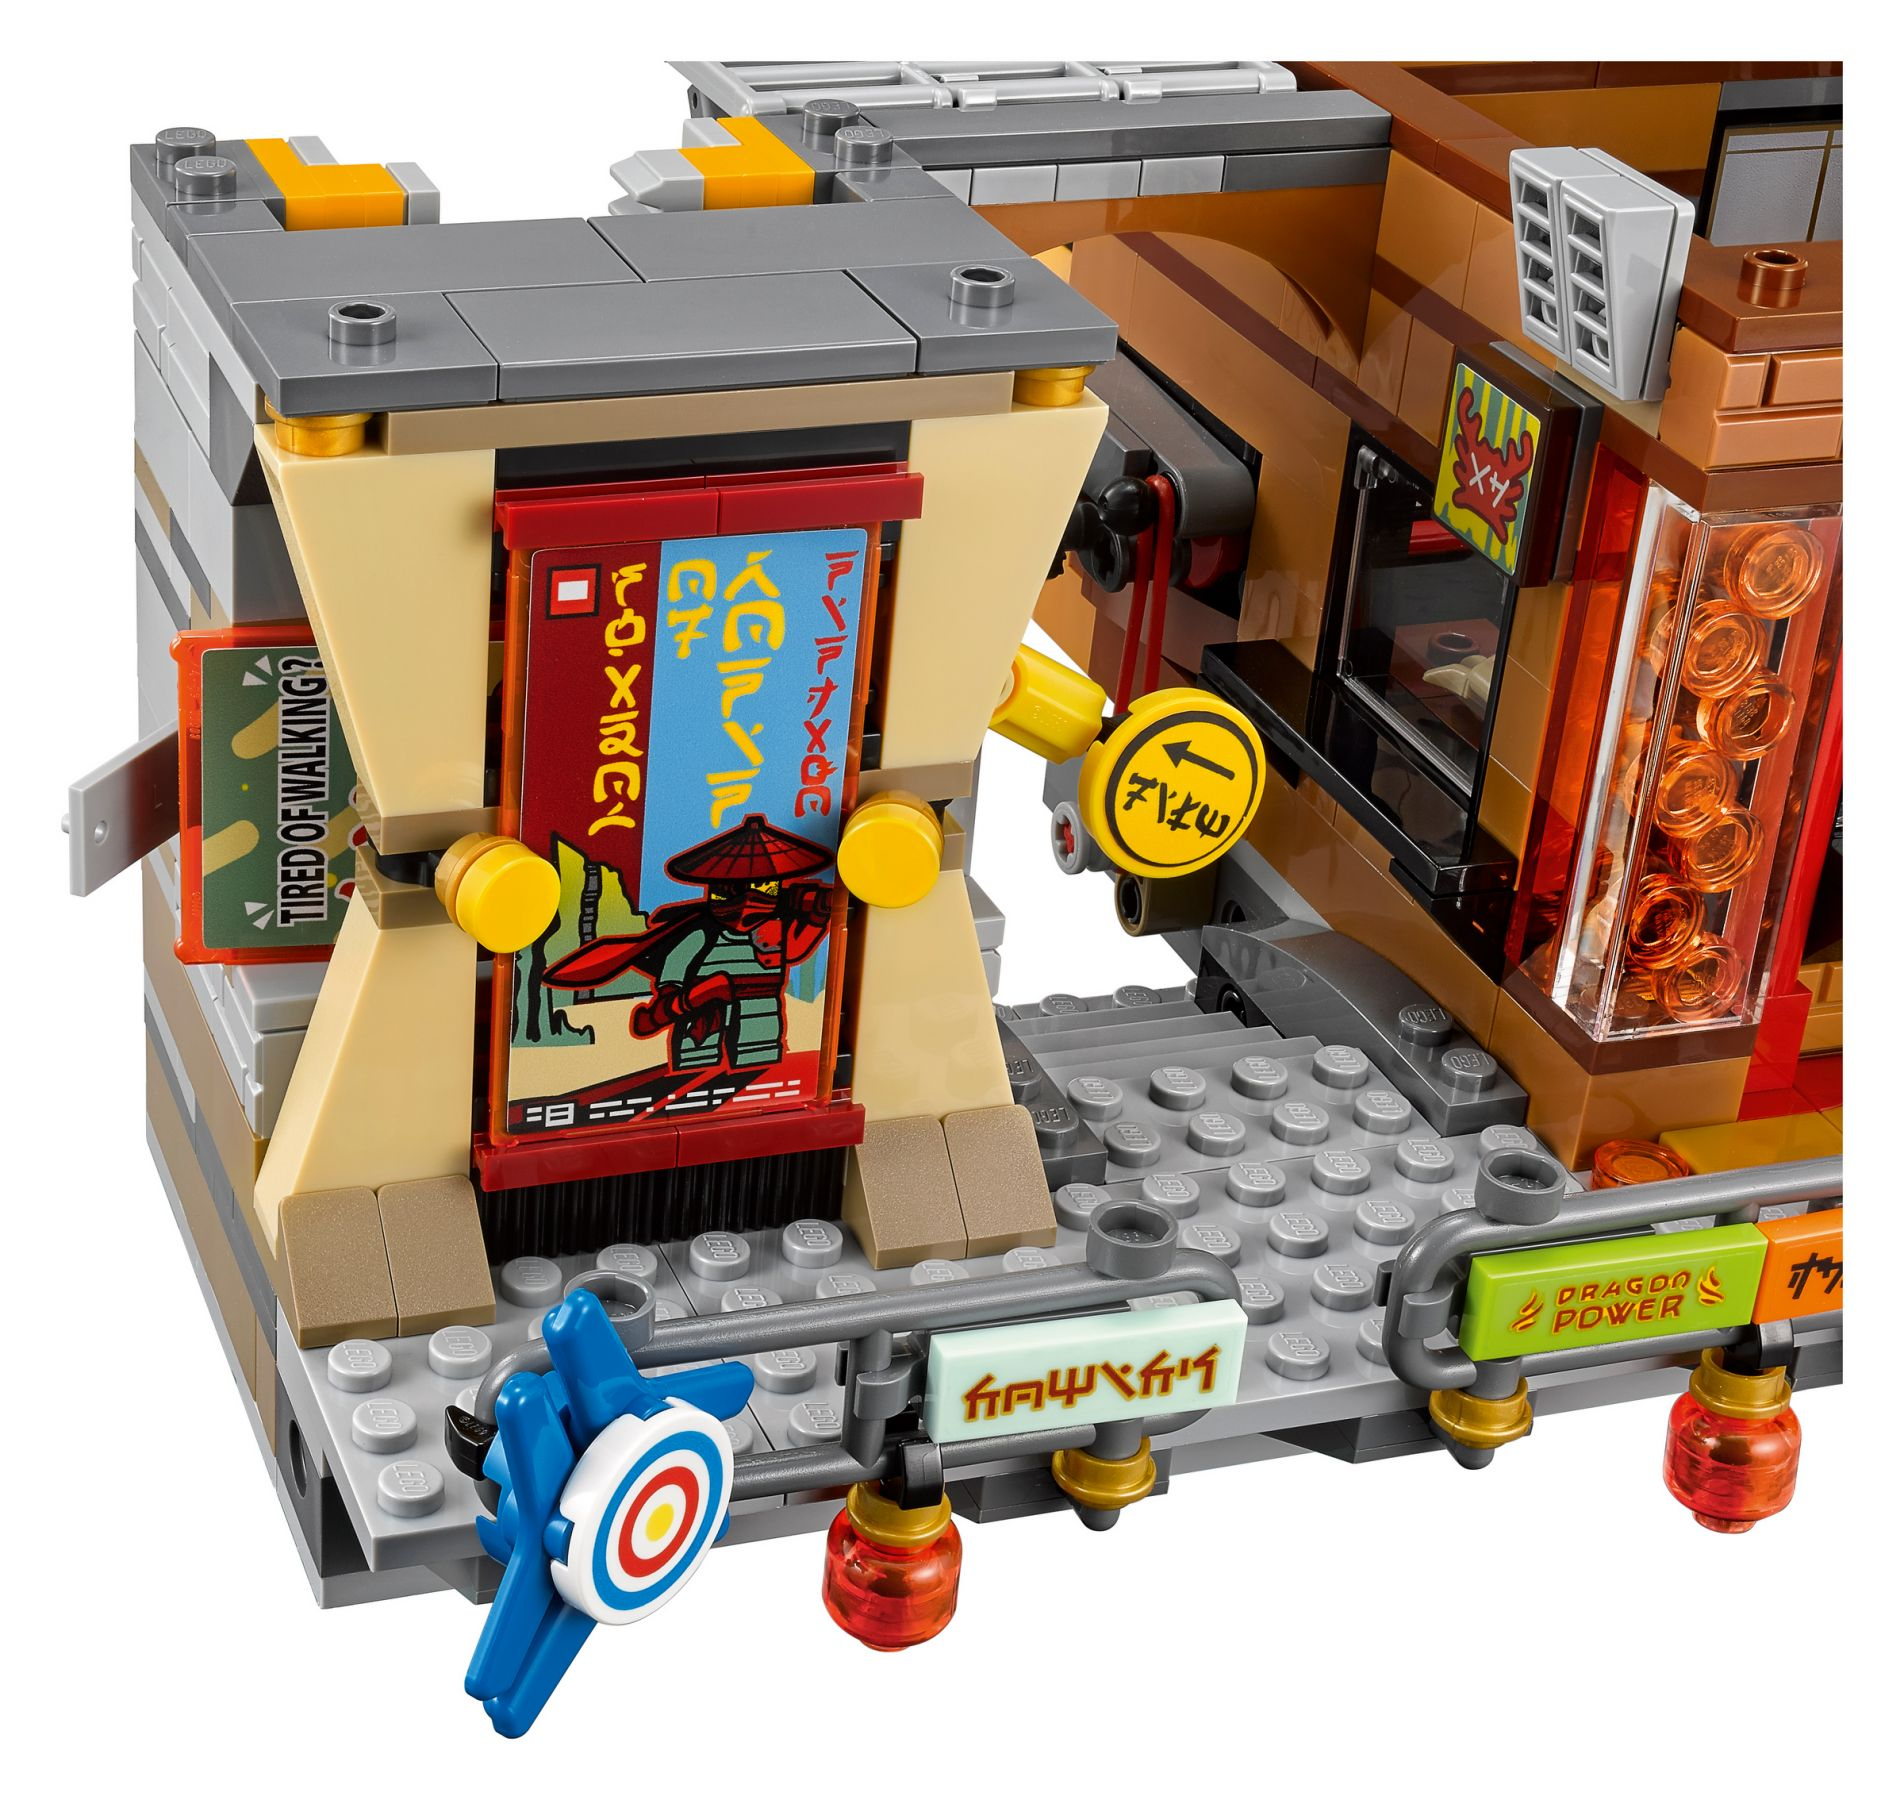 LEGO The LEGO Ninjago Movie 70620 Ninjago City LEGO_70620_alt11.jpg